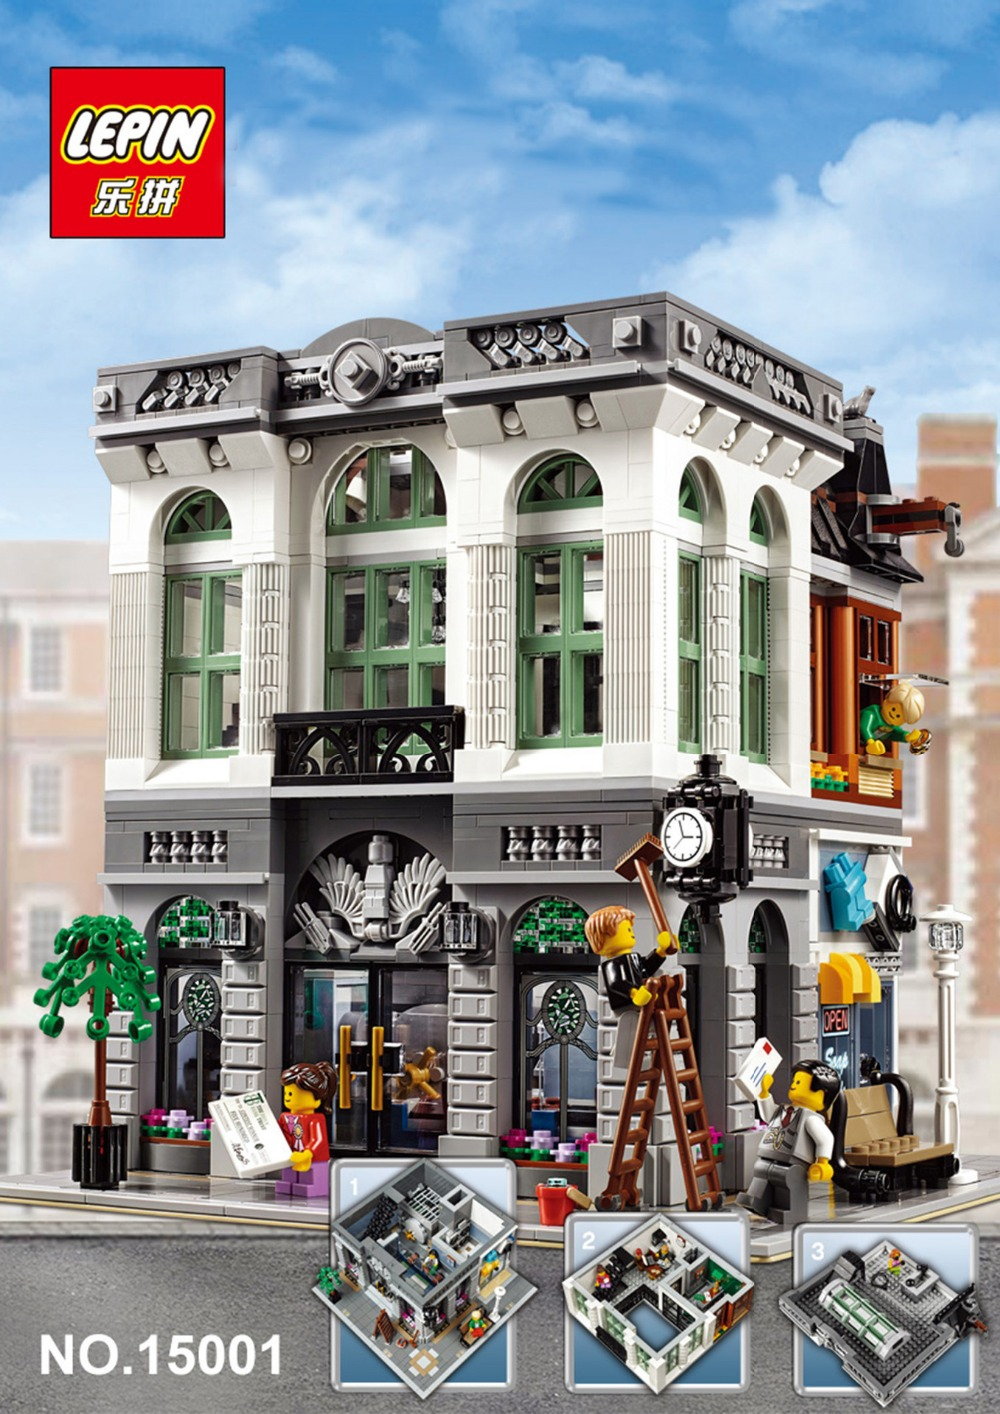 lepin 2413pcs 15001 Clone Creator Brick Bank Building Blocks Toys Modular City Series model Kids Gift Compatible 10251 lepin city creator 3 in 1 beachside vacation building blocks bricks kids model toys for children compatible with lego gift kid